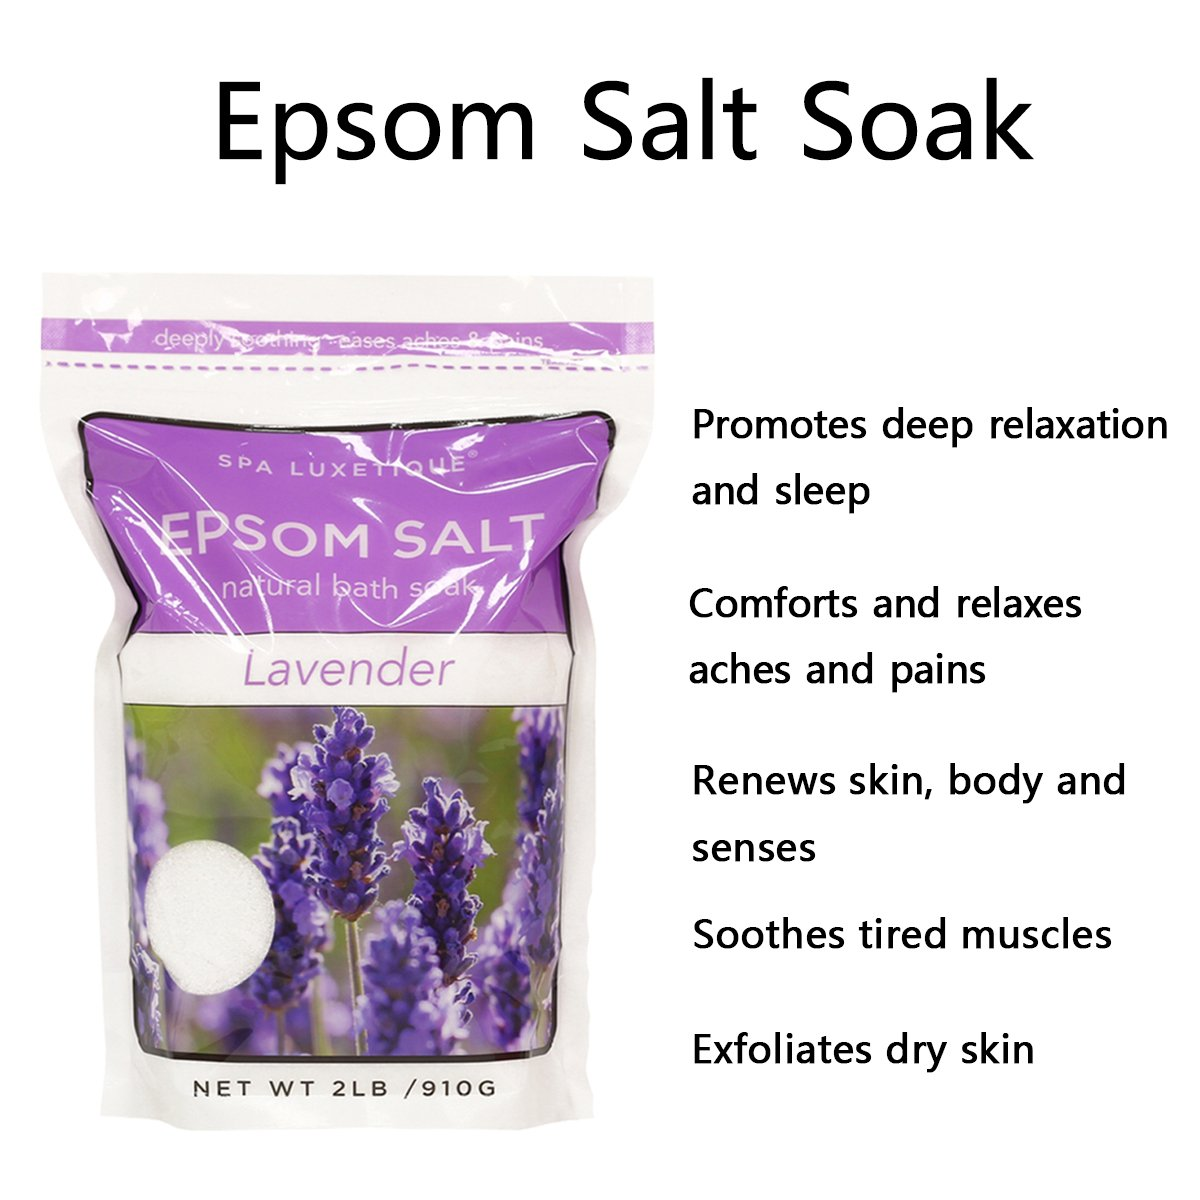 Spa Luxetique Premium Epsom Salt for Foot Soak, 2 lbs Magnesium Sulfate USP Bath Salt Formula, Sleep Well with Calming Lavender Essential Oil by spa luxetique (Image #2)